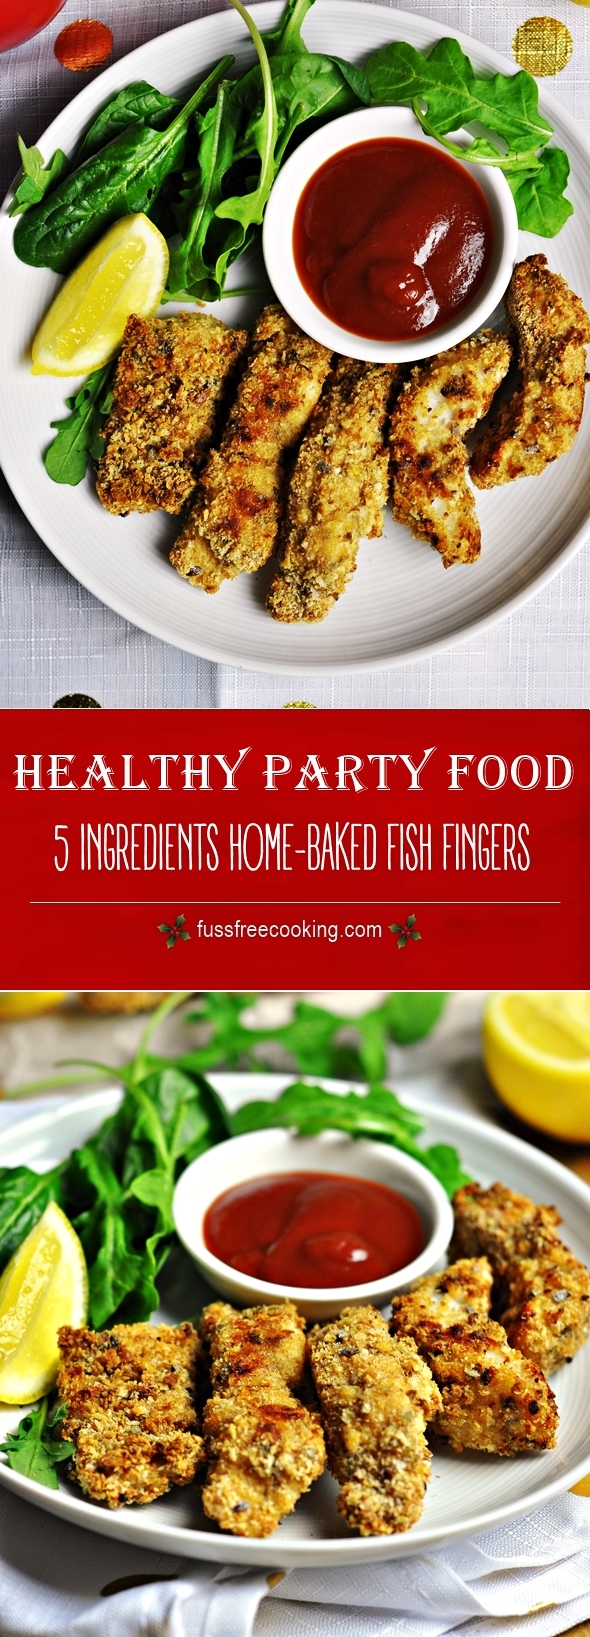 5 Ingredients Baked Crispy Fish Fingers | Healthy Party Food | fussfreecooking.com